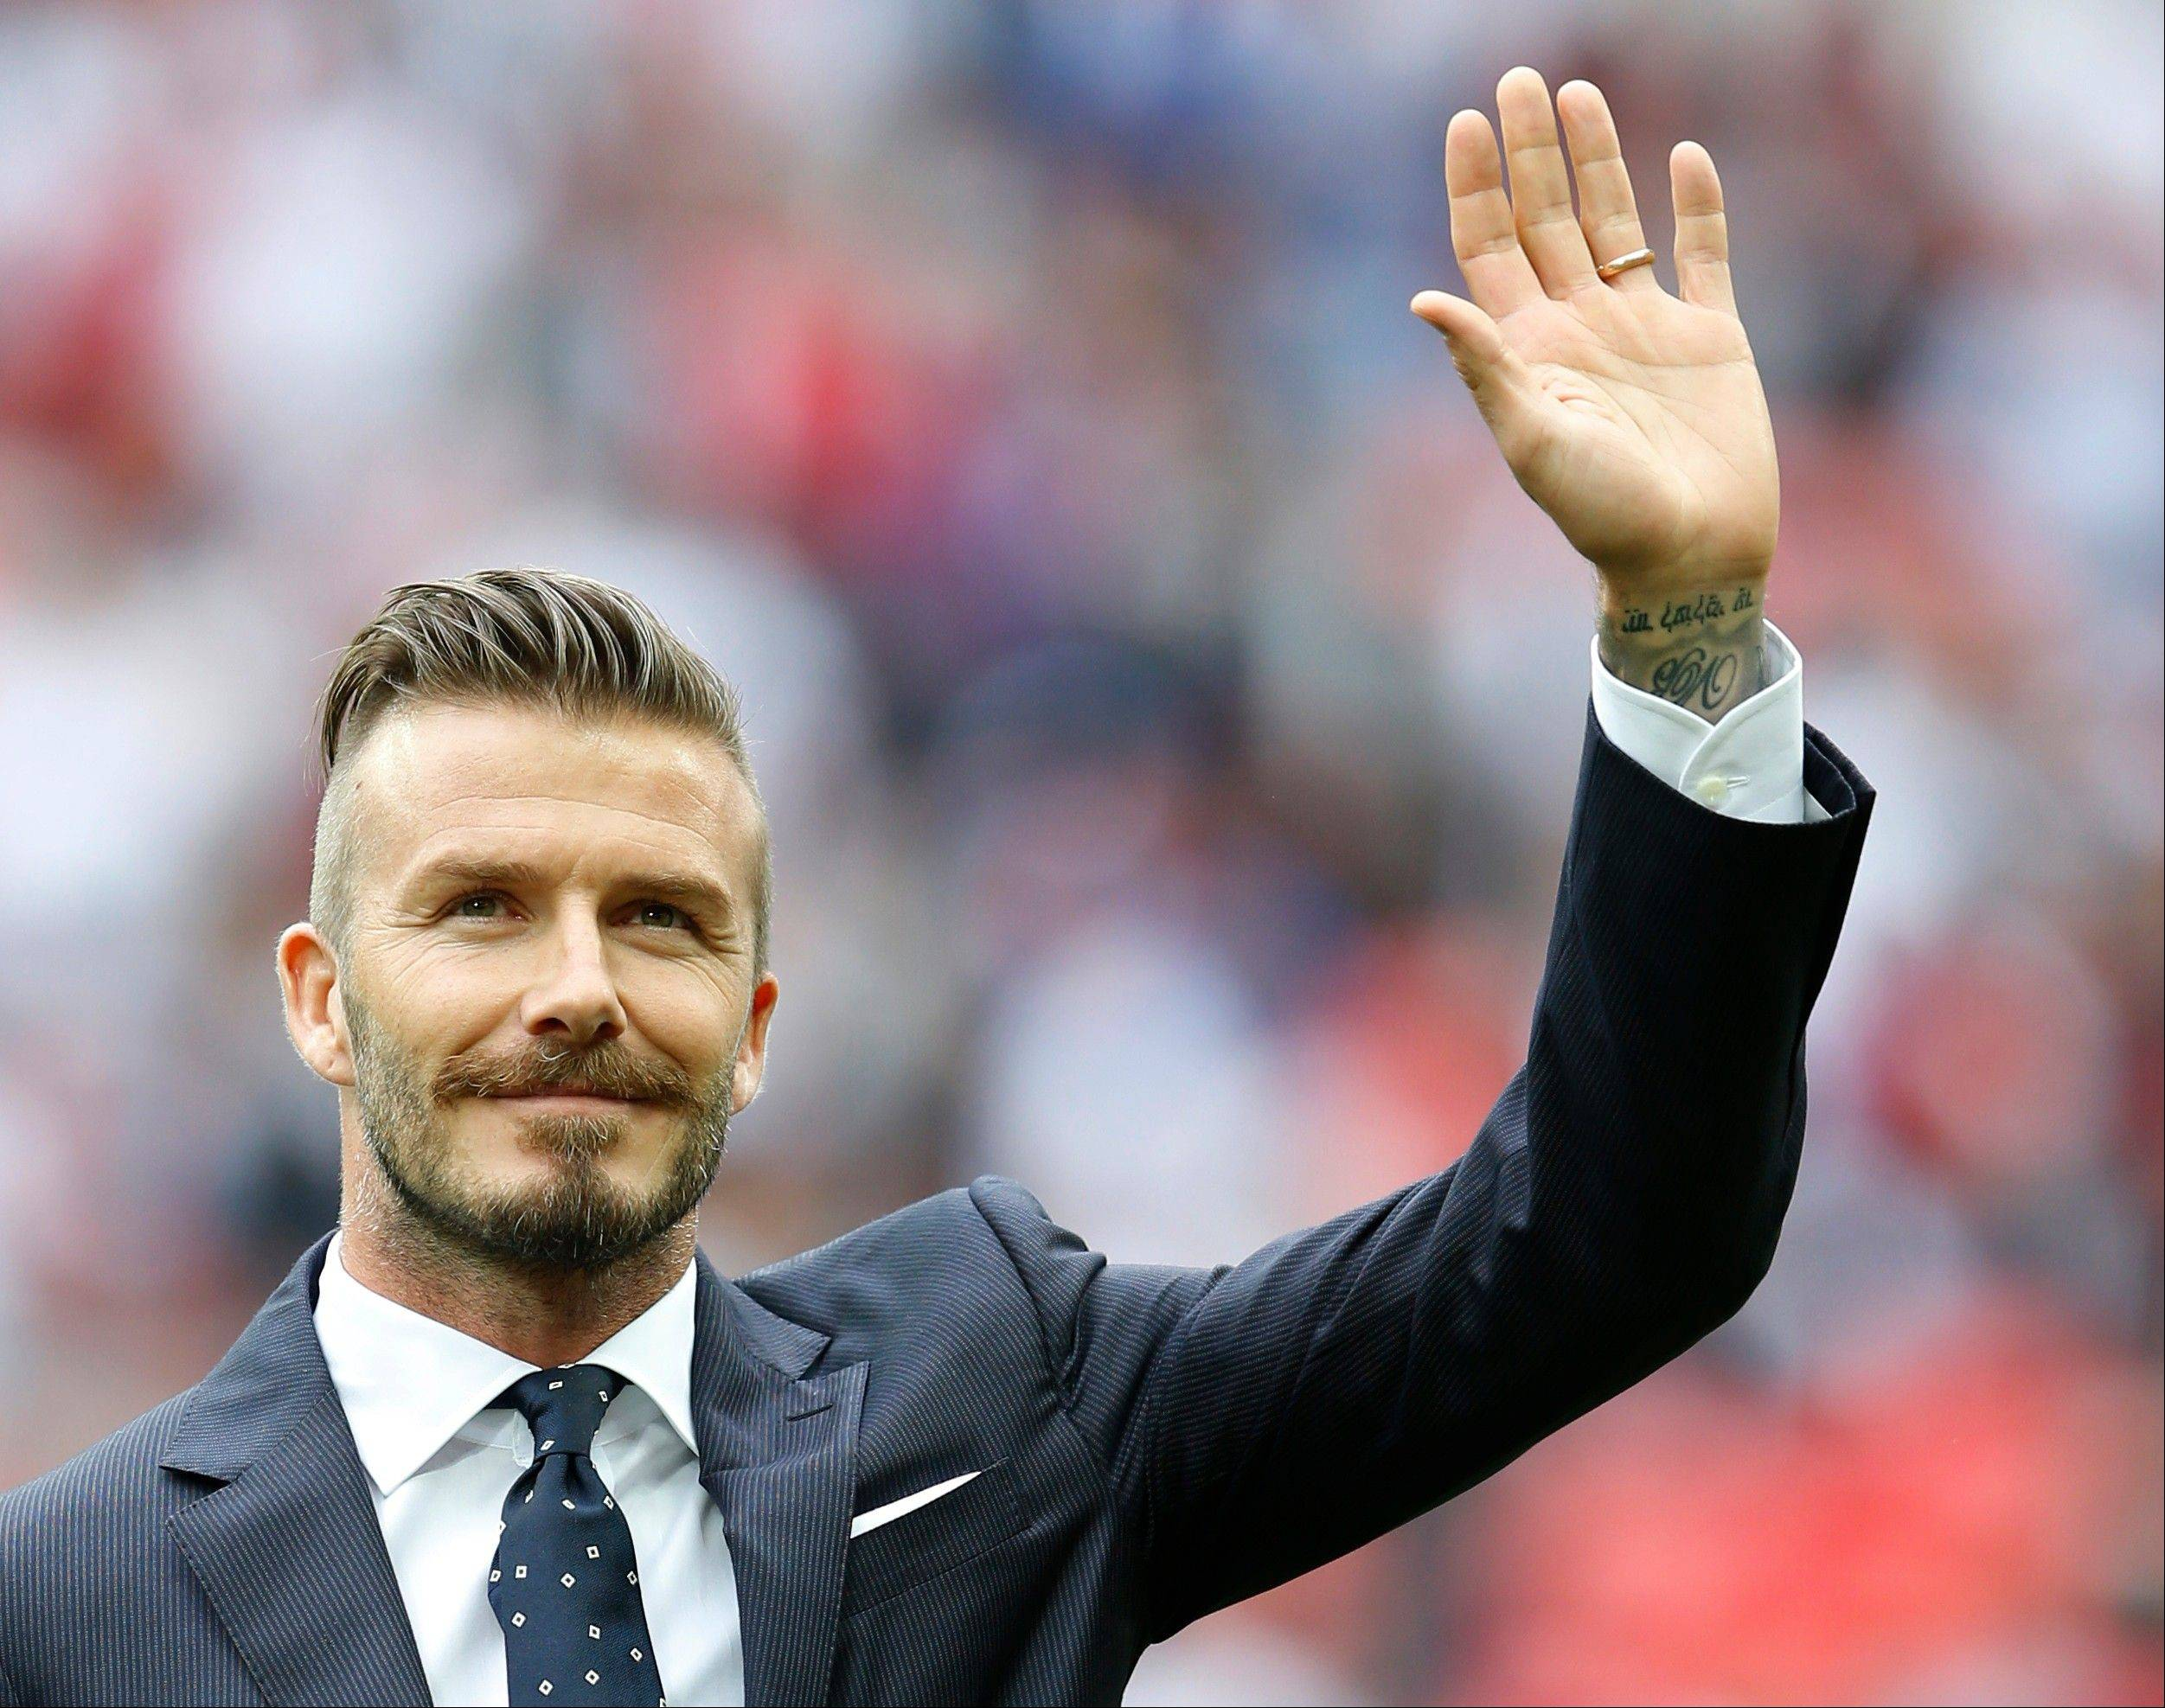 England's David Beckham is retiring from soccer at the end of the season. The 38-year-old Beckham recently won a league title in a fourth country with Paris Saint-Germain. He has become a global superstar since starting his career at Manchester United.